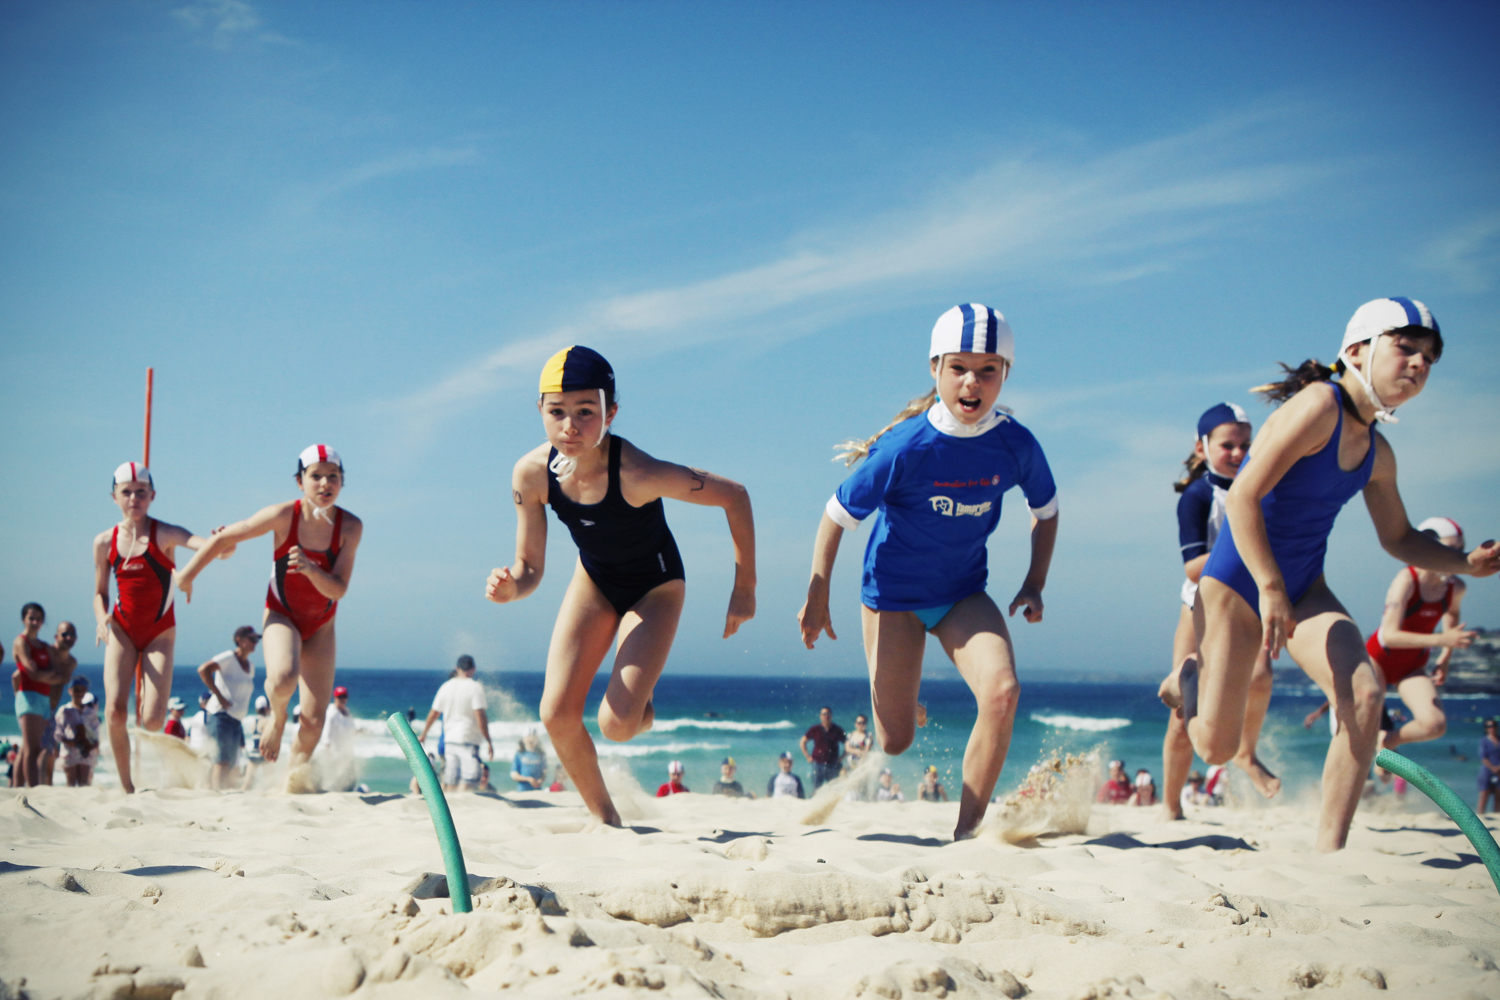 Nippers_Surf_Life_Saving_Bondi_Beach.04.jpeg